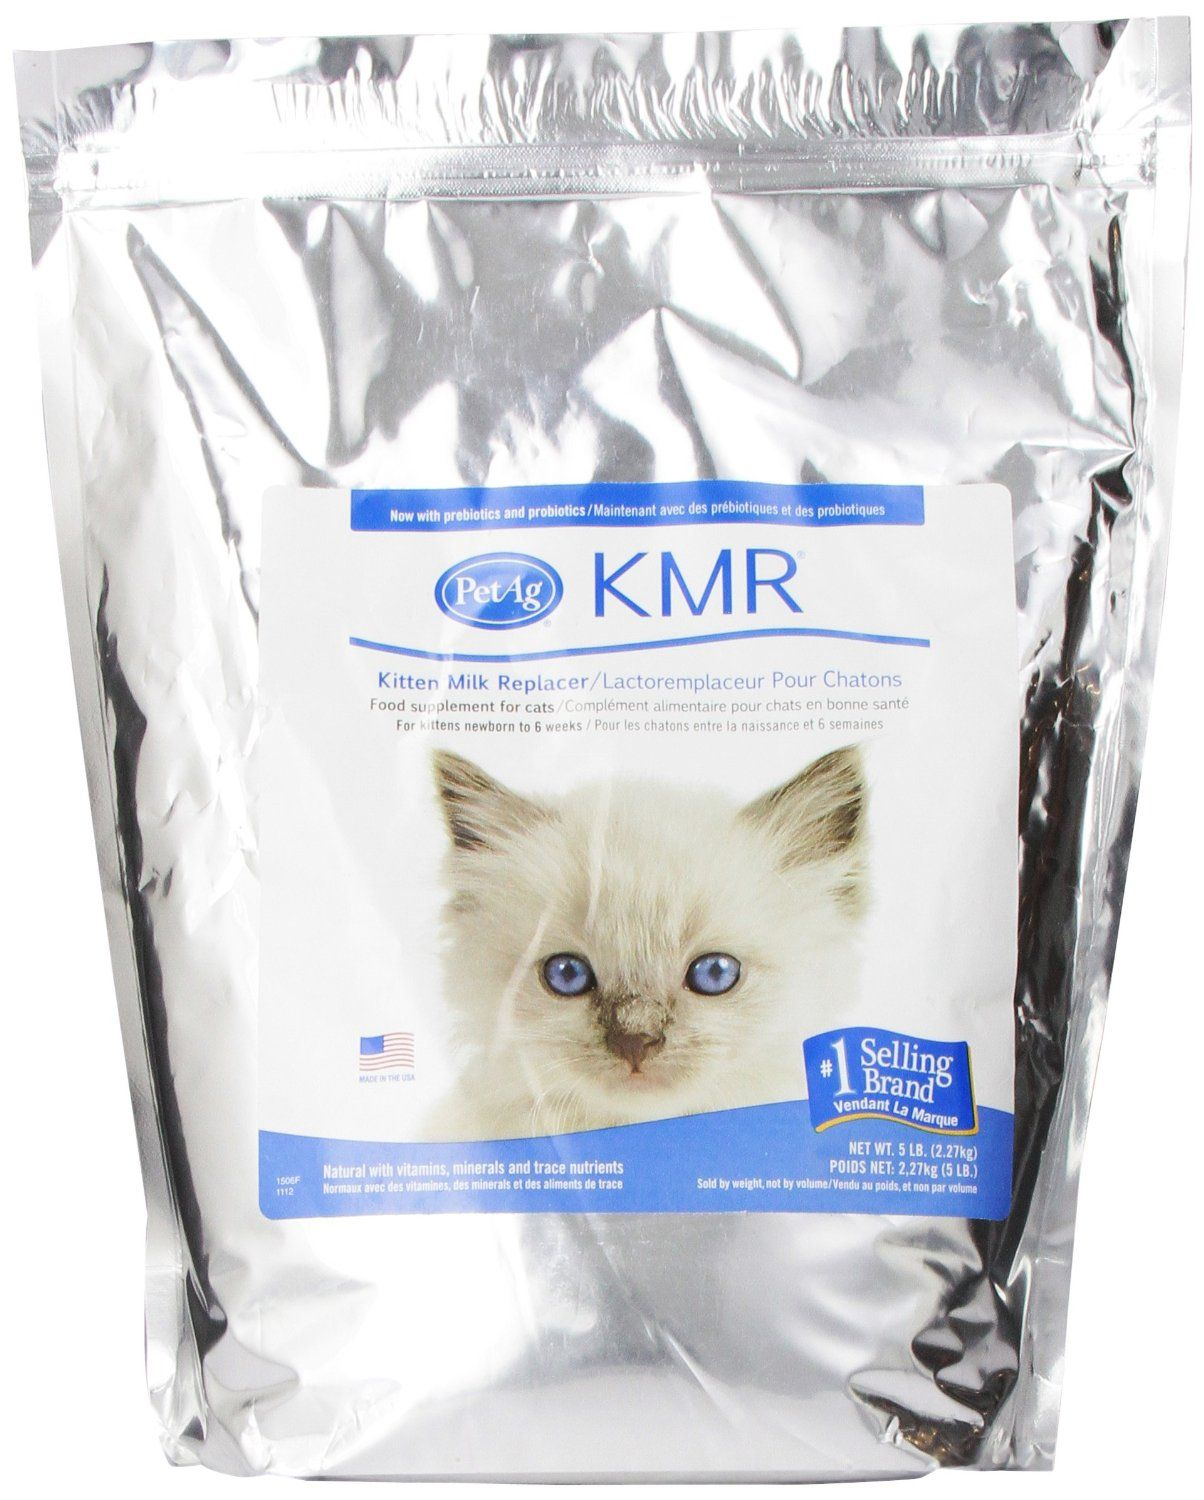 KMR Kitten Milk Replacer You can find out more